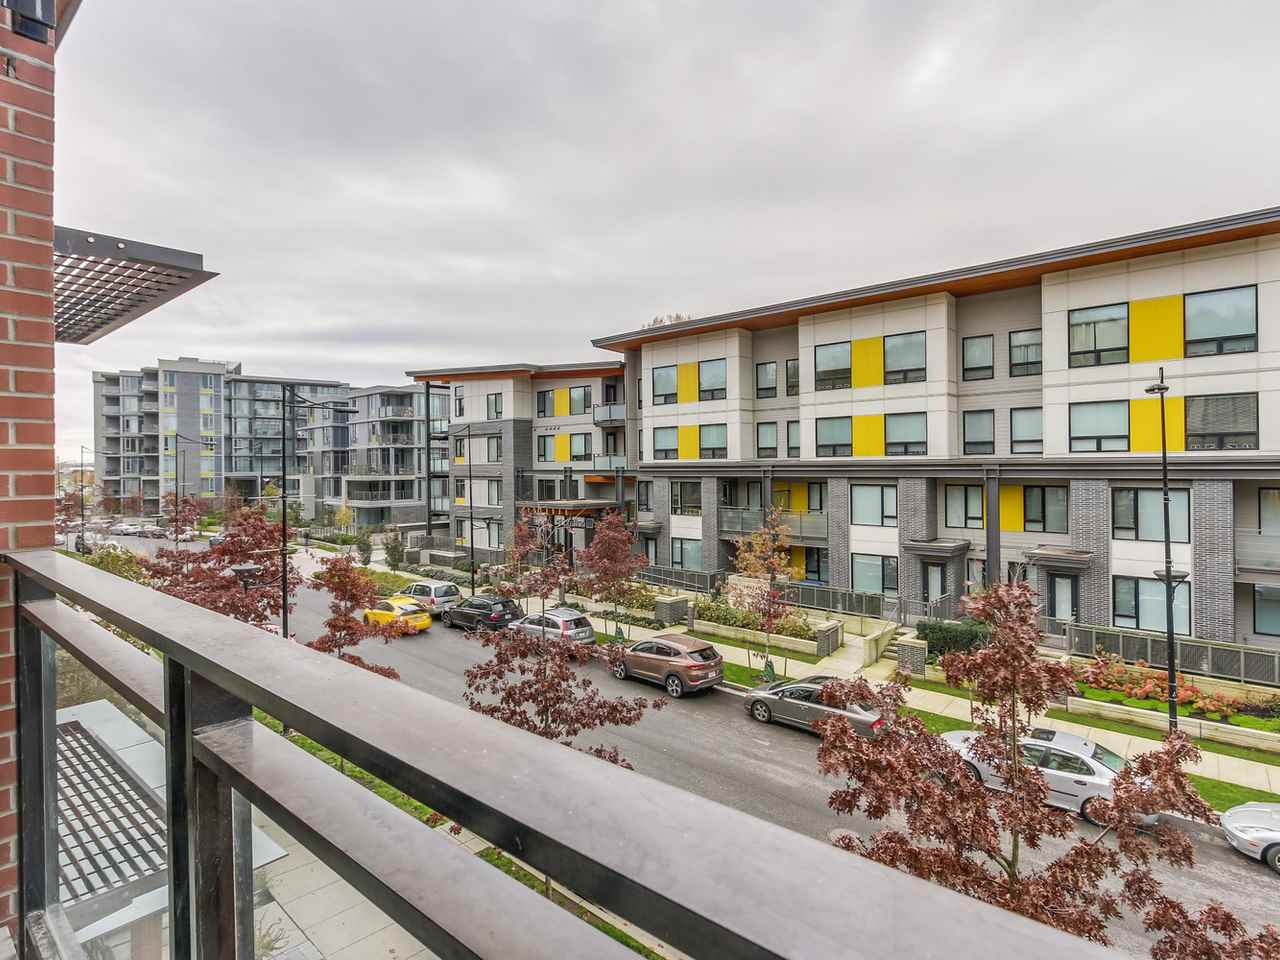 Photo 19: 313 3133 RIVERWALK Avenue in Vancouver: Champlain Heights Condo for sale (Vancouver East)  : MLS(r) # R2121189